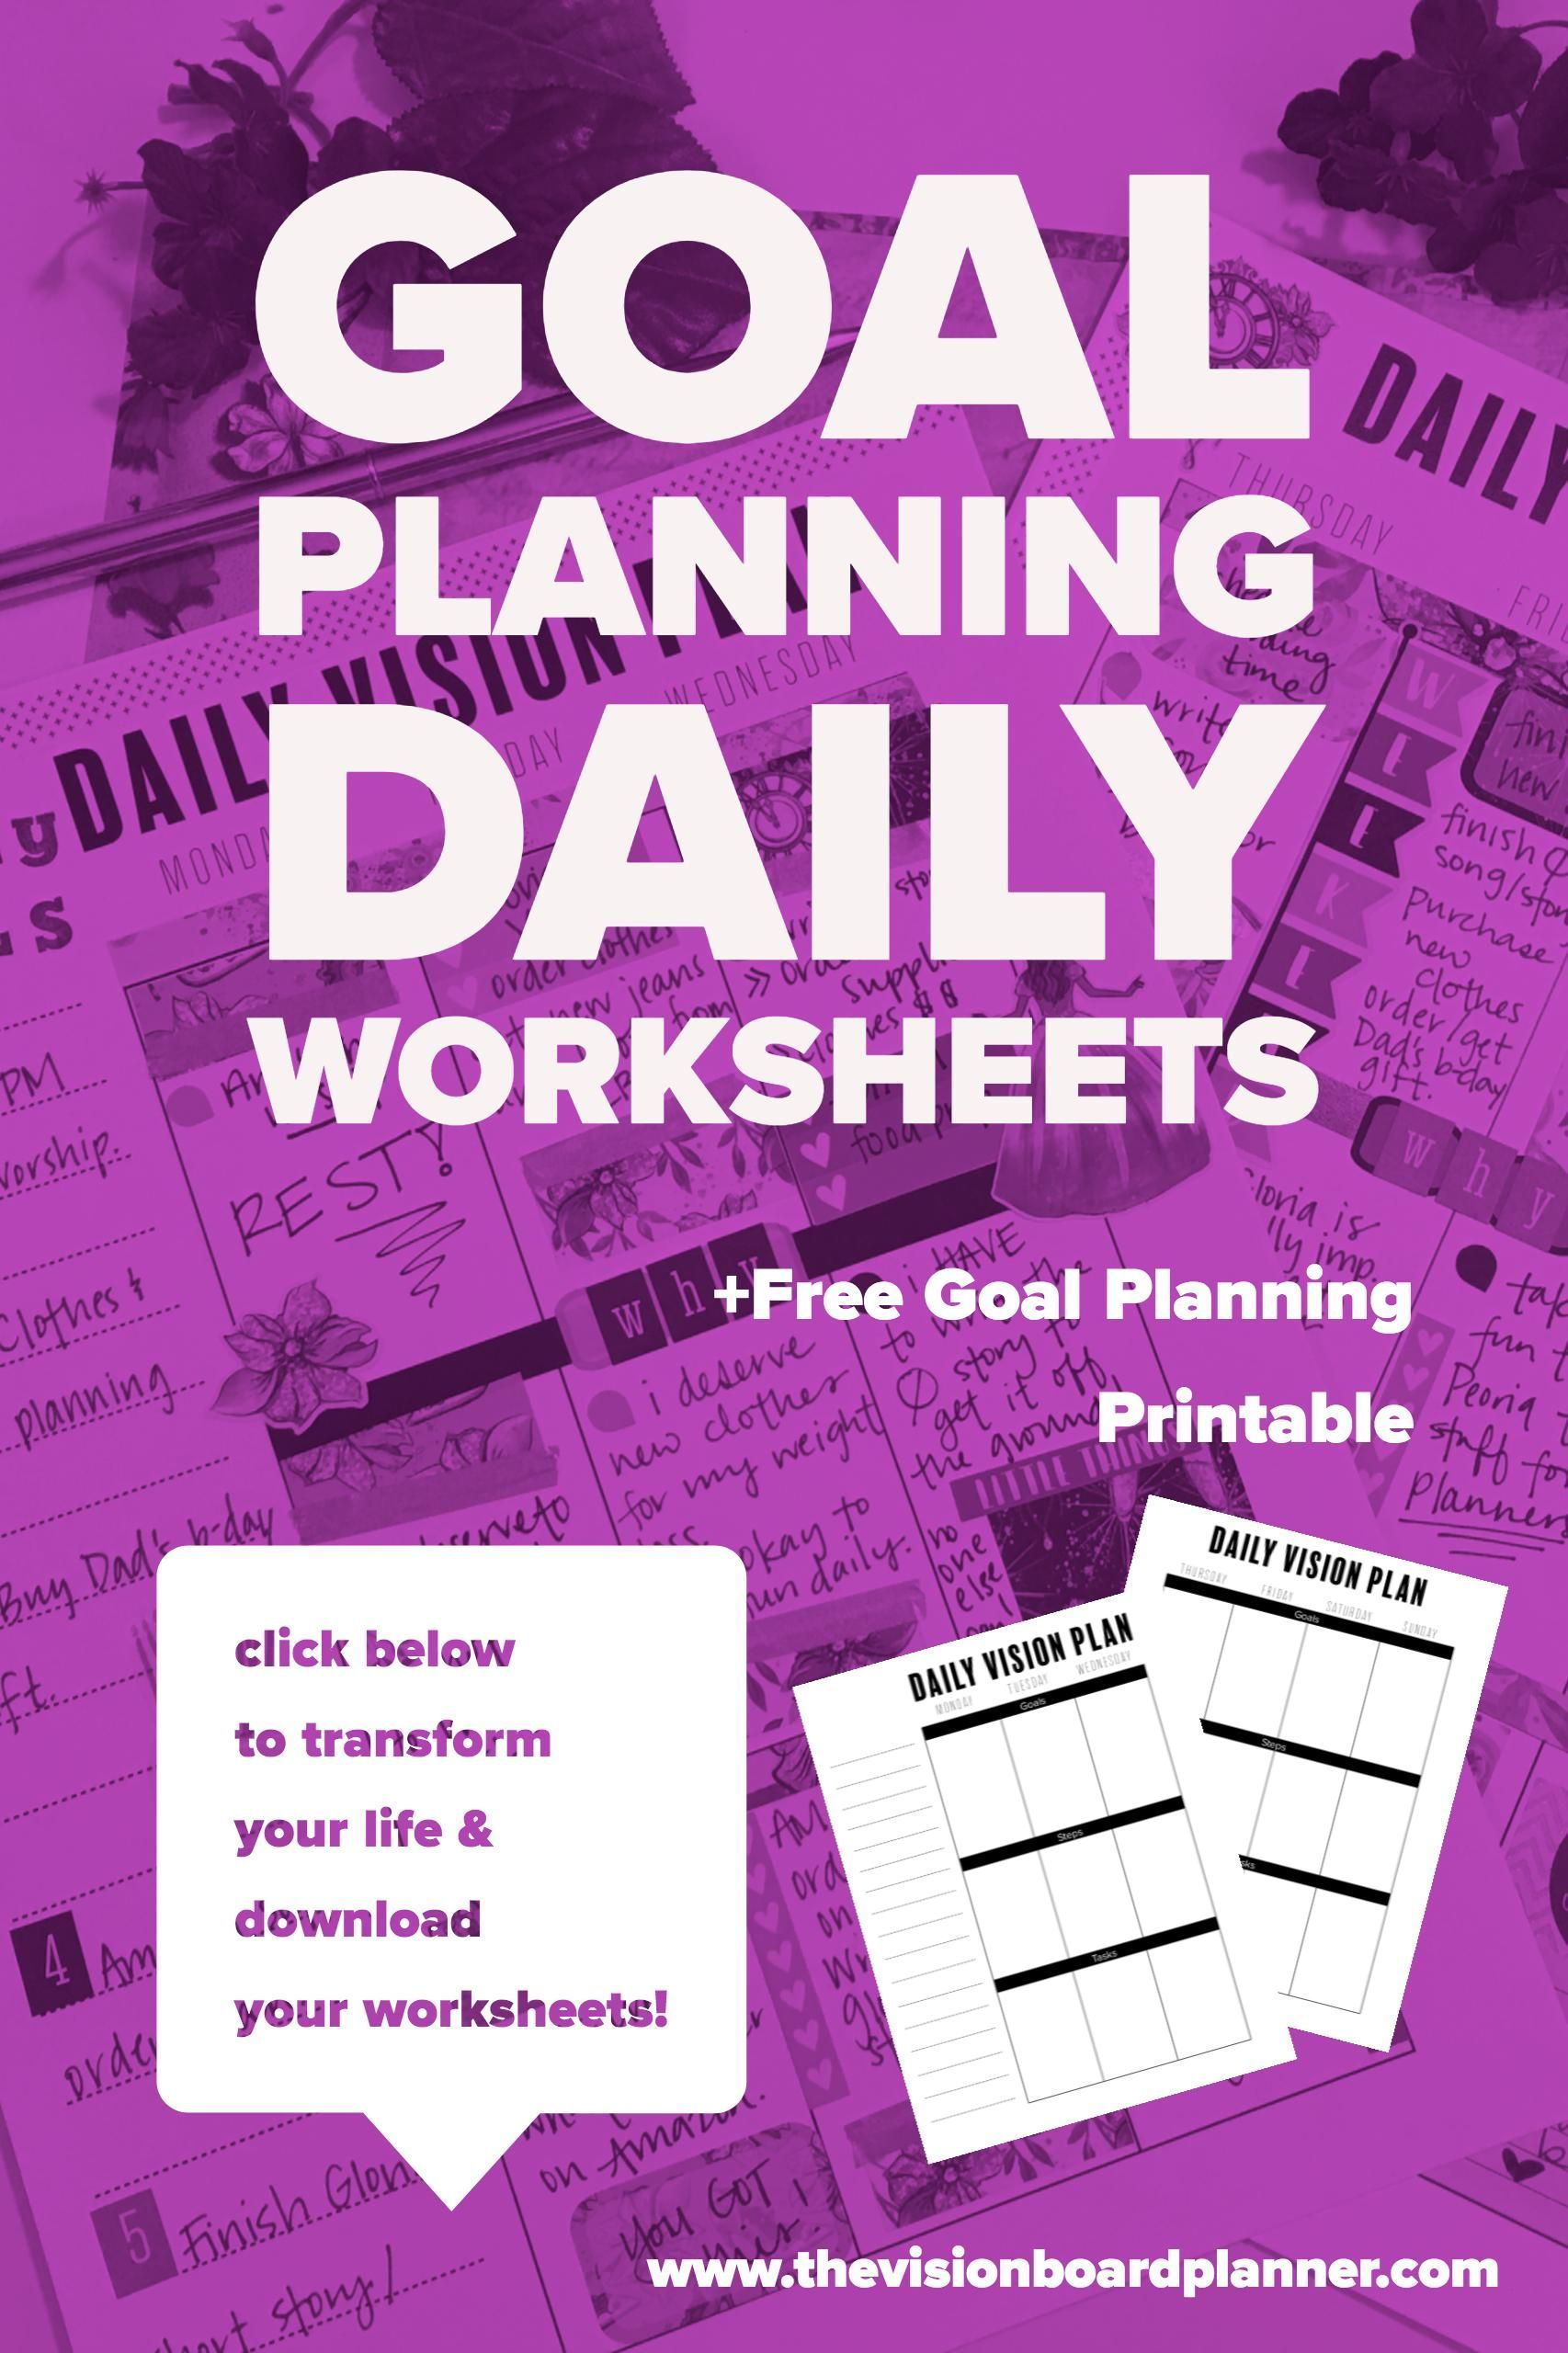 Looking to make daily progress on your goals download